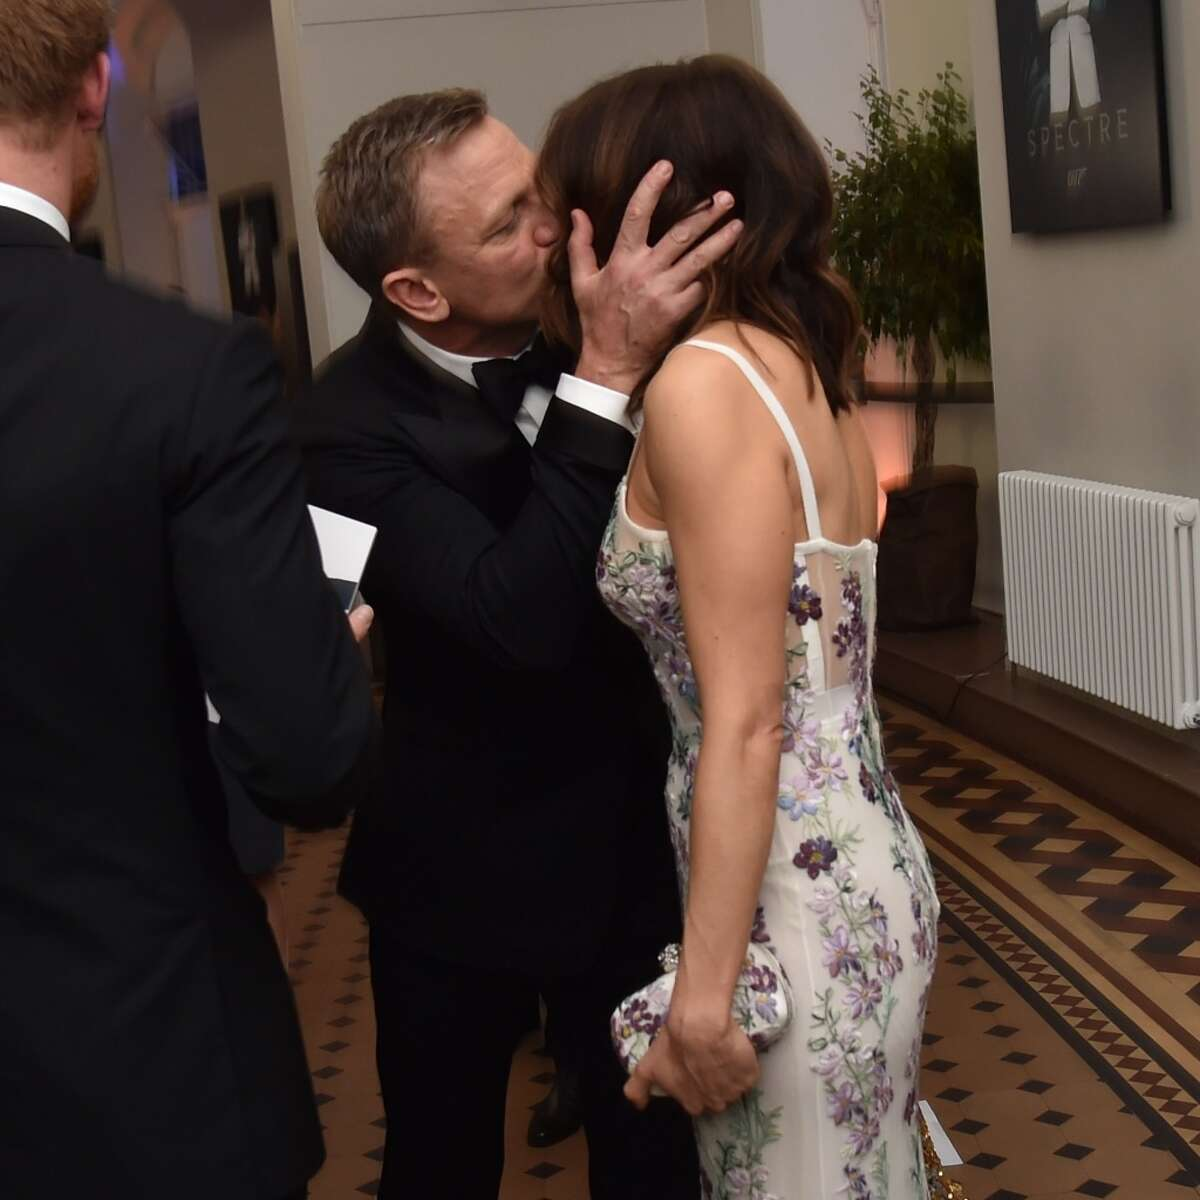 """Daniel Craig kisses his wife actress Rachel Weisz while they attend The Cinema and Television Benevolent Fund's Royal Film Performance 2015 of the 24th James Bond Adventure, """"Spectre"""" at Royal Albert Hall on Oct. 26, 2015 in London, England."""